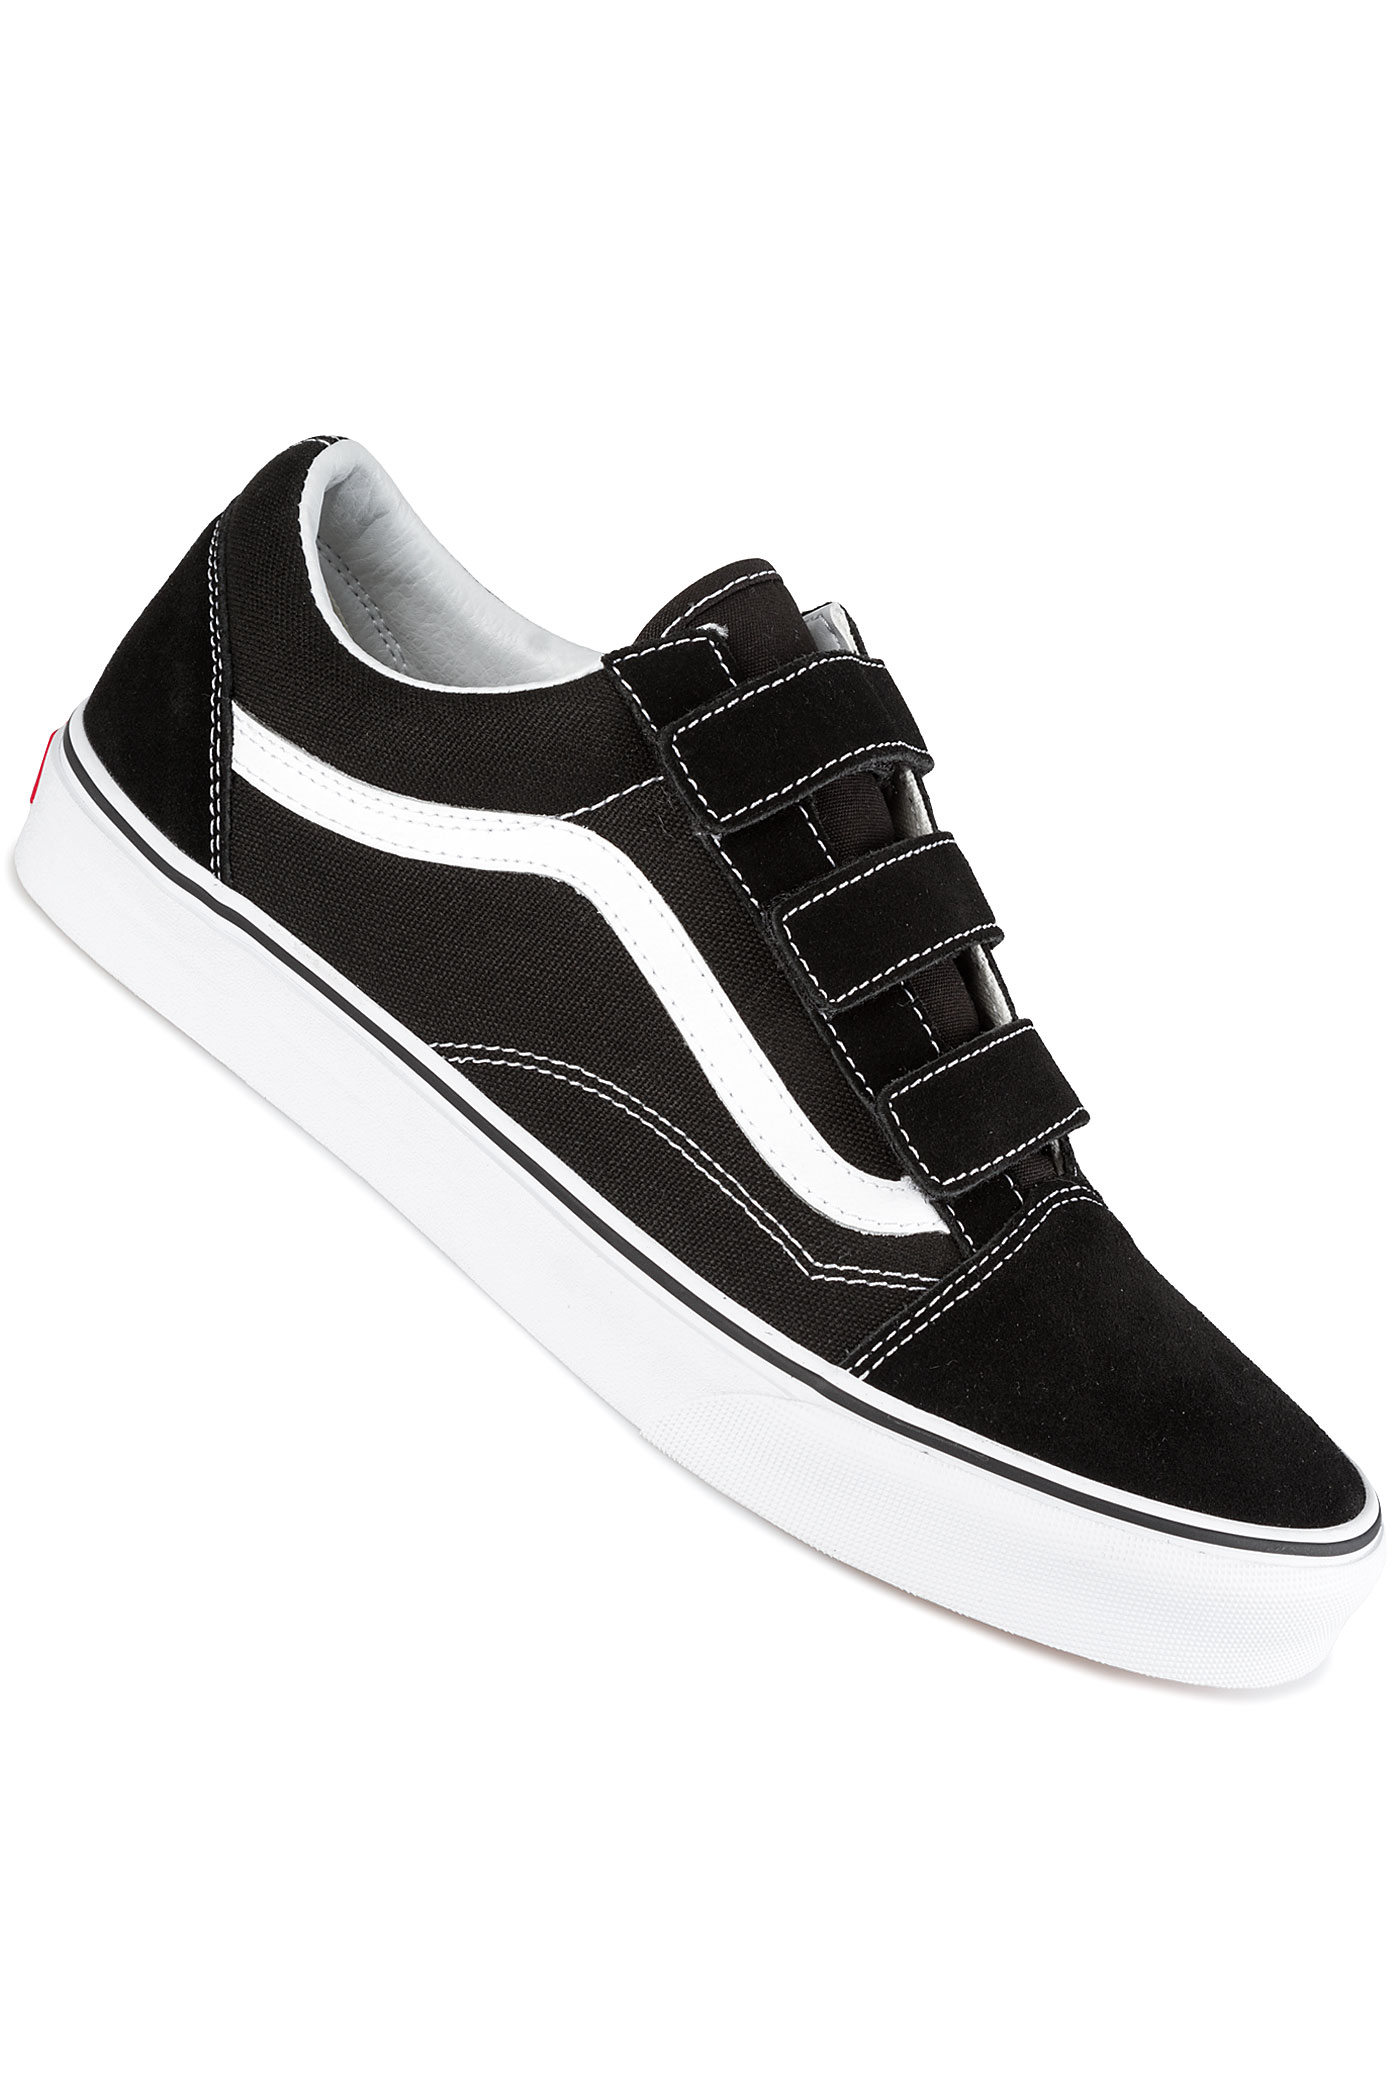 vans old skool v schuh black true white kaufen bei skatedeluxe. Black Bedroom Furniture Sets. Home Design Ideas